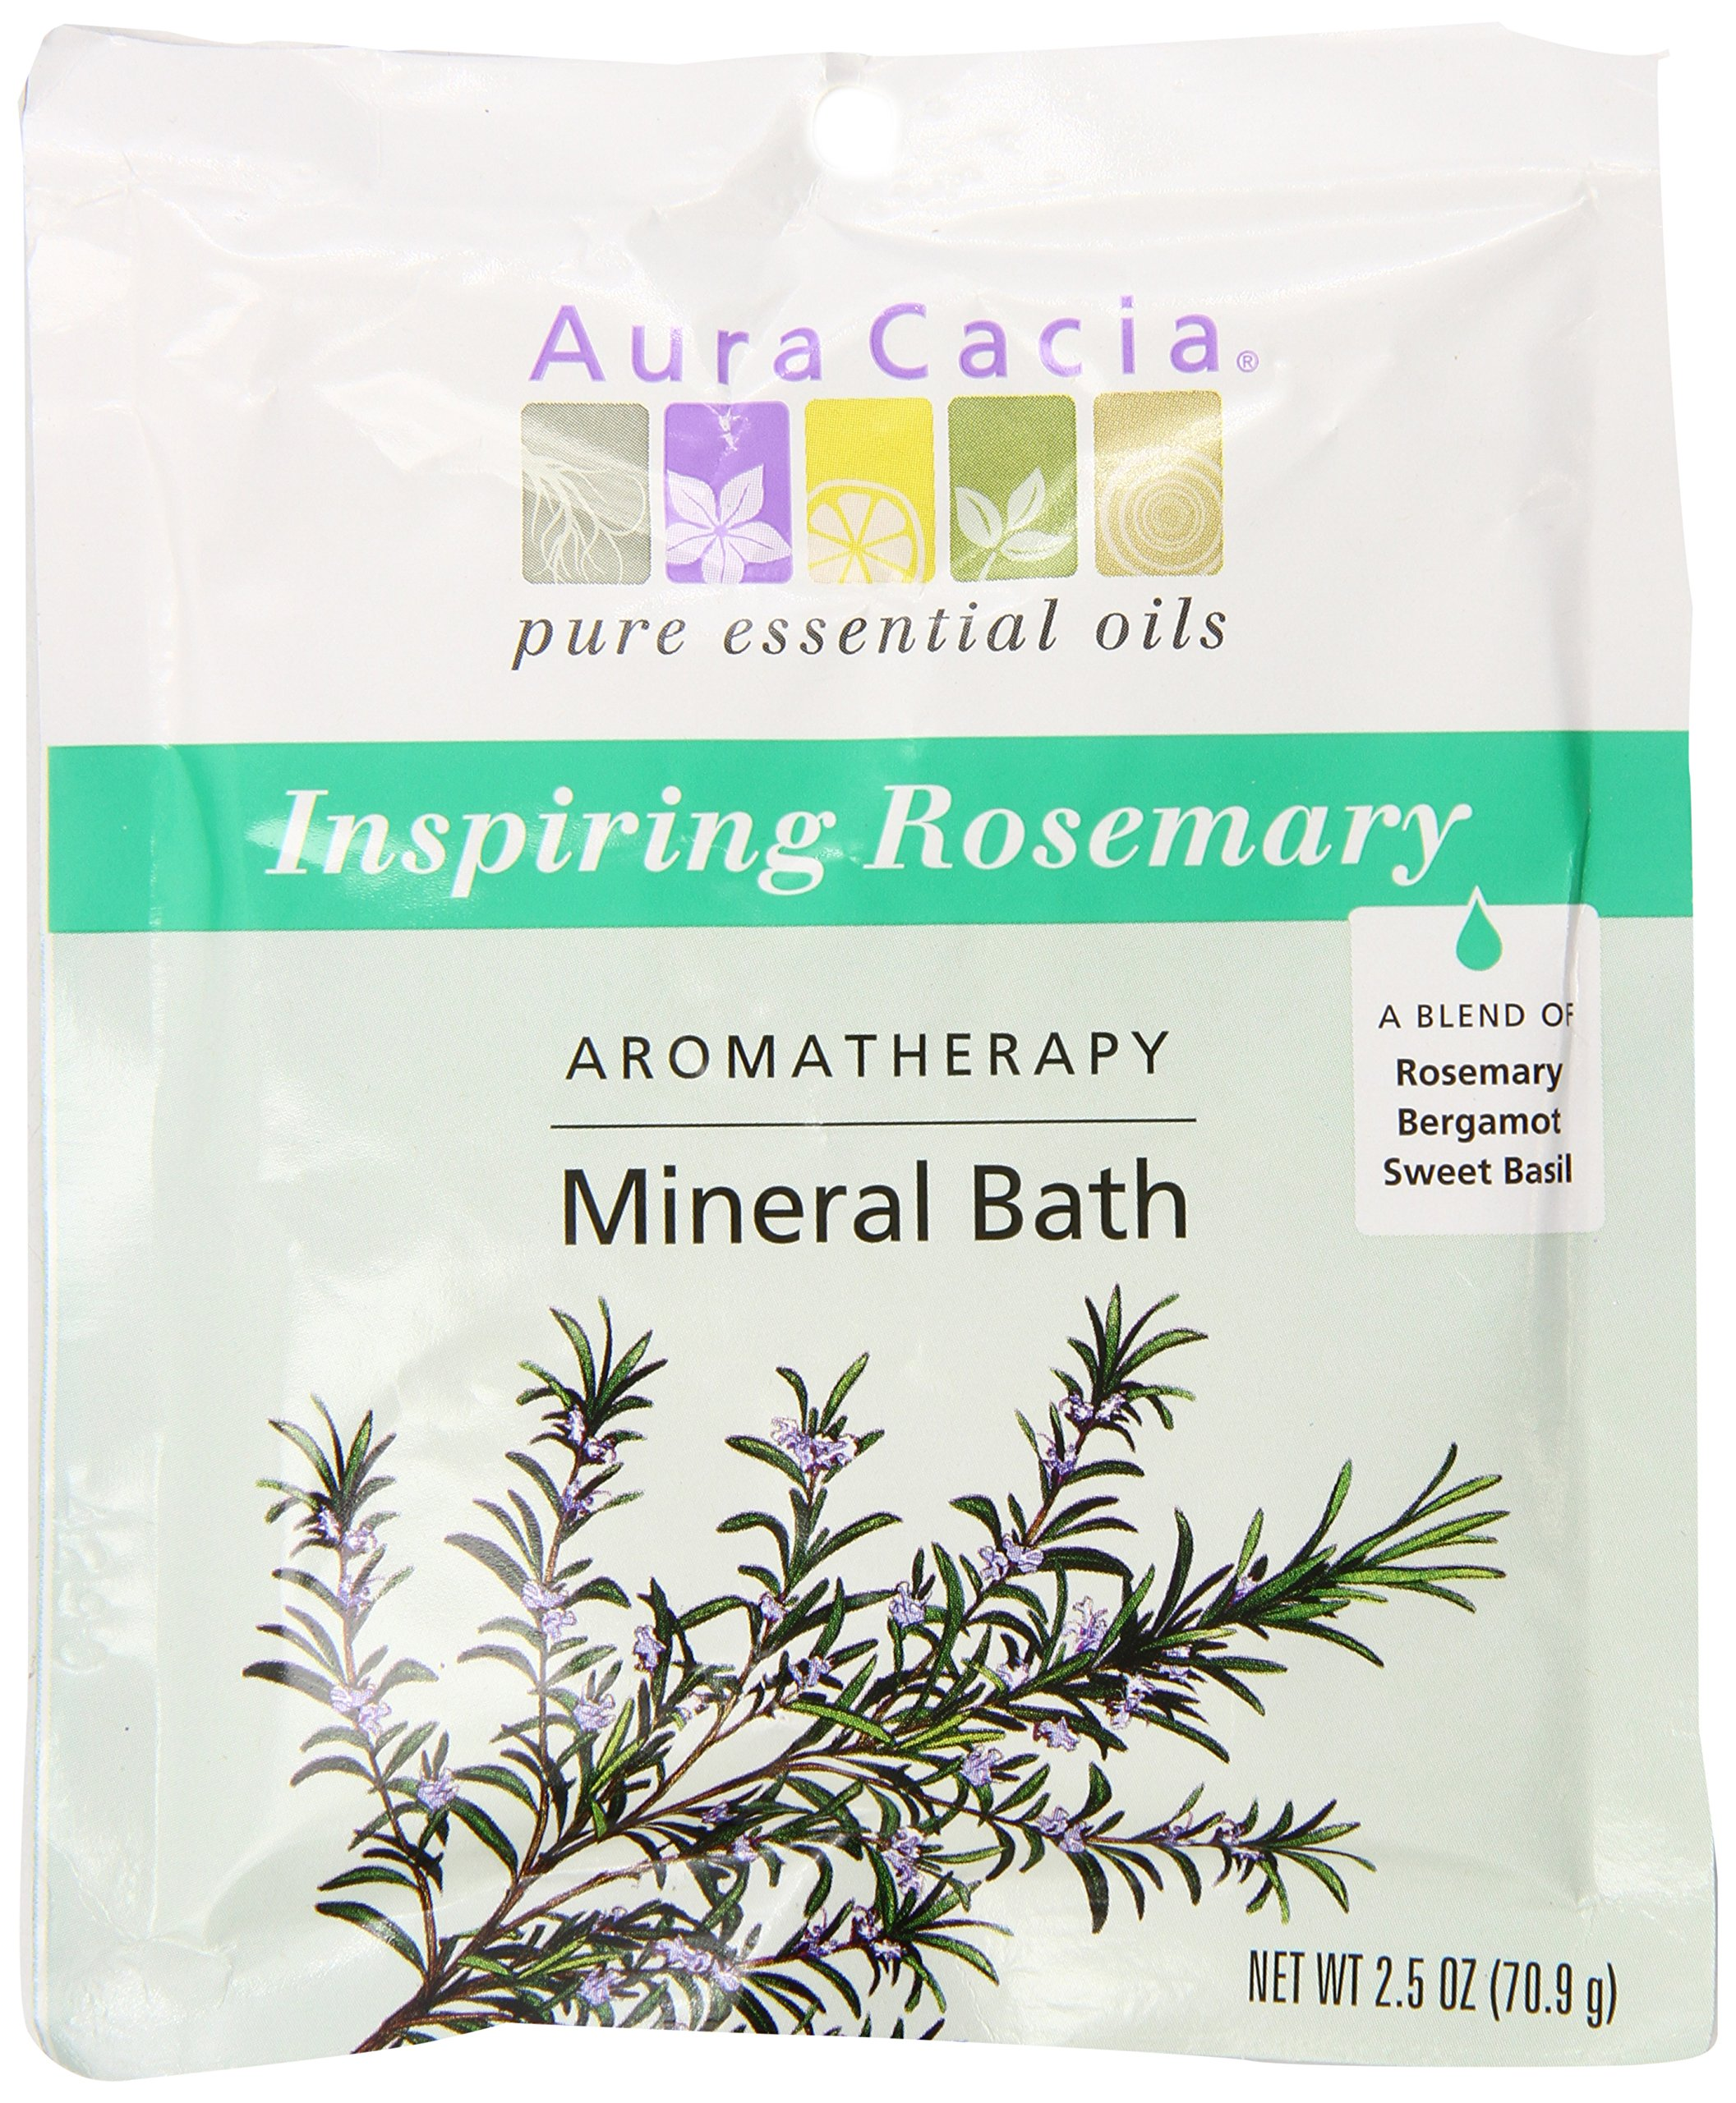 Aura Cacia Aromatherapy Mineral Bath, Inspiring Rosemary, 2.5 ounce packet (Pack of 3)